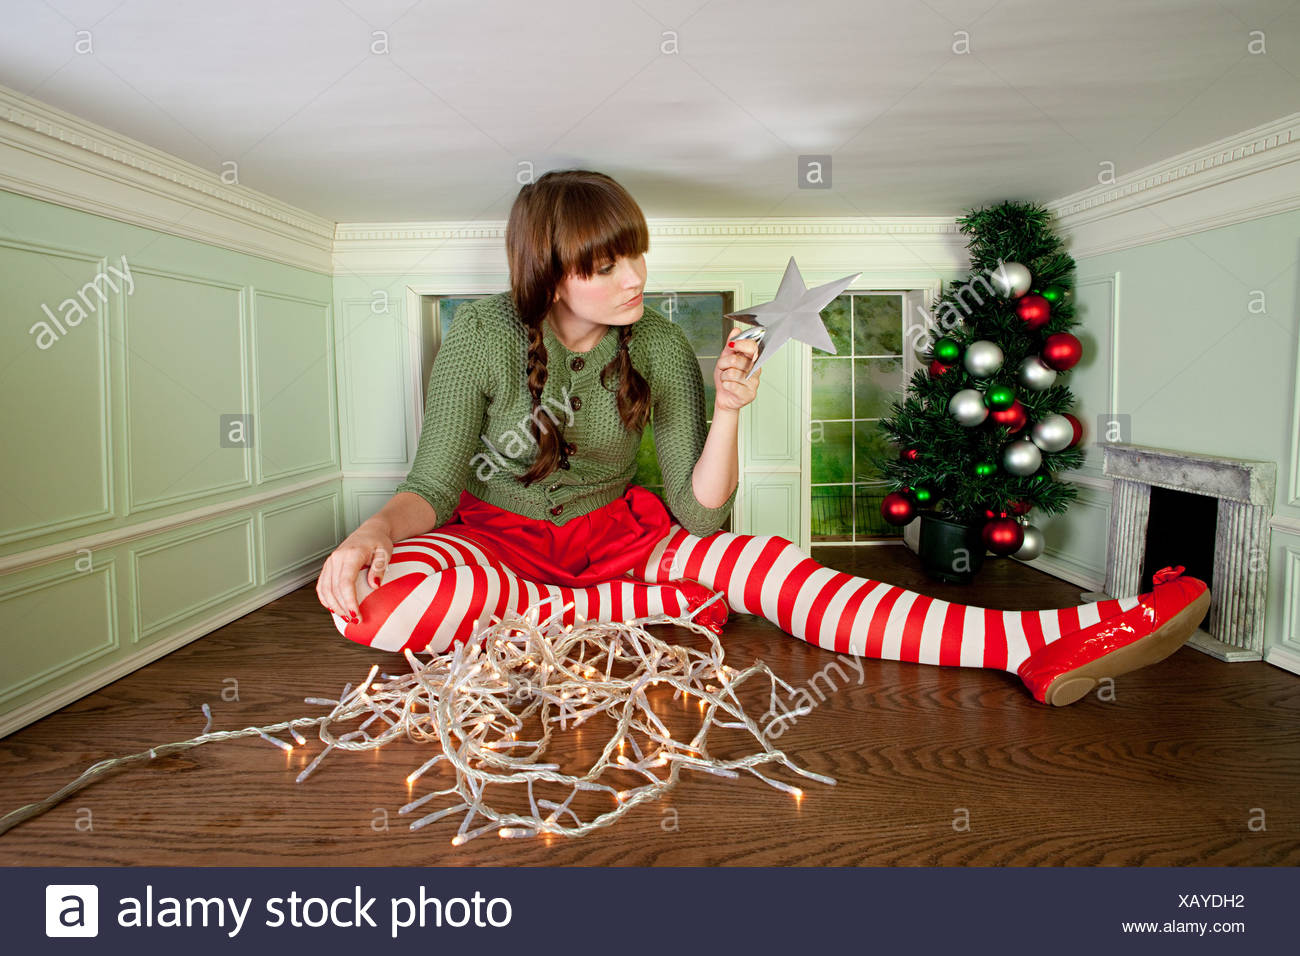 young woman in small room with christmas decorations stock image